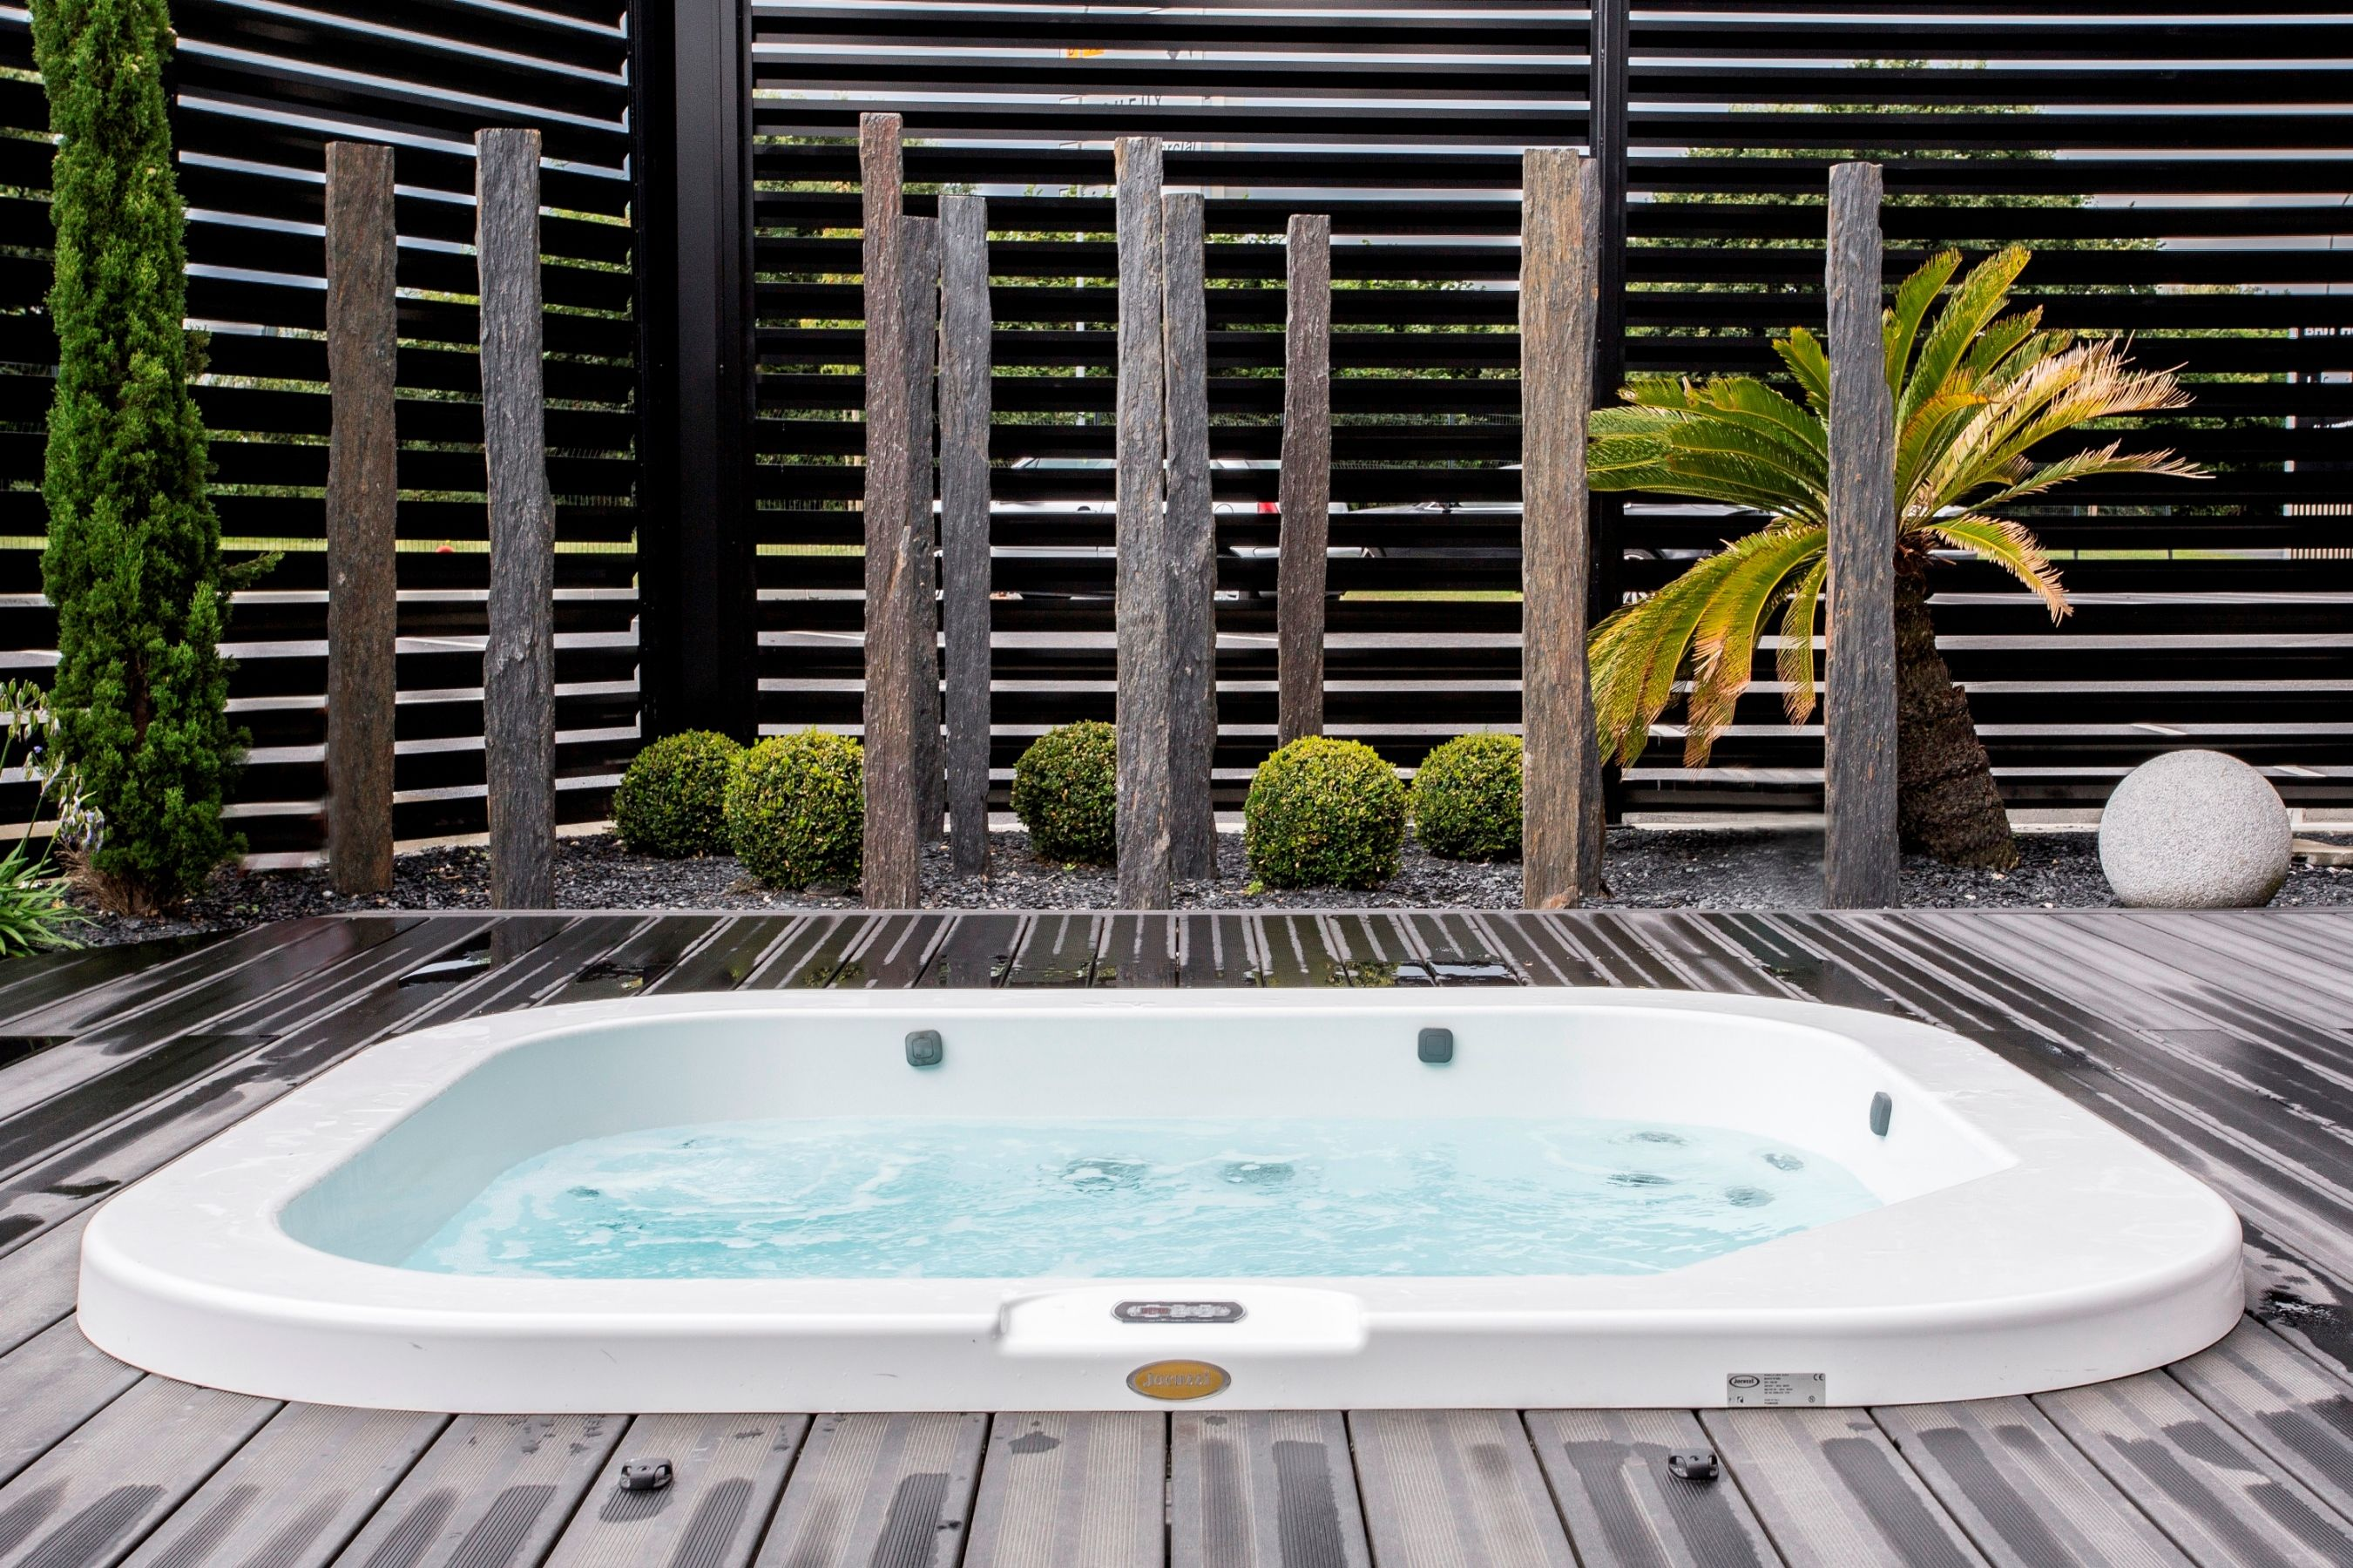 spa delos de jacuzzi encastr dans une terrasse en bois. Black Bedroom Furniture Sets. Home Design Ideas